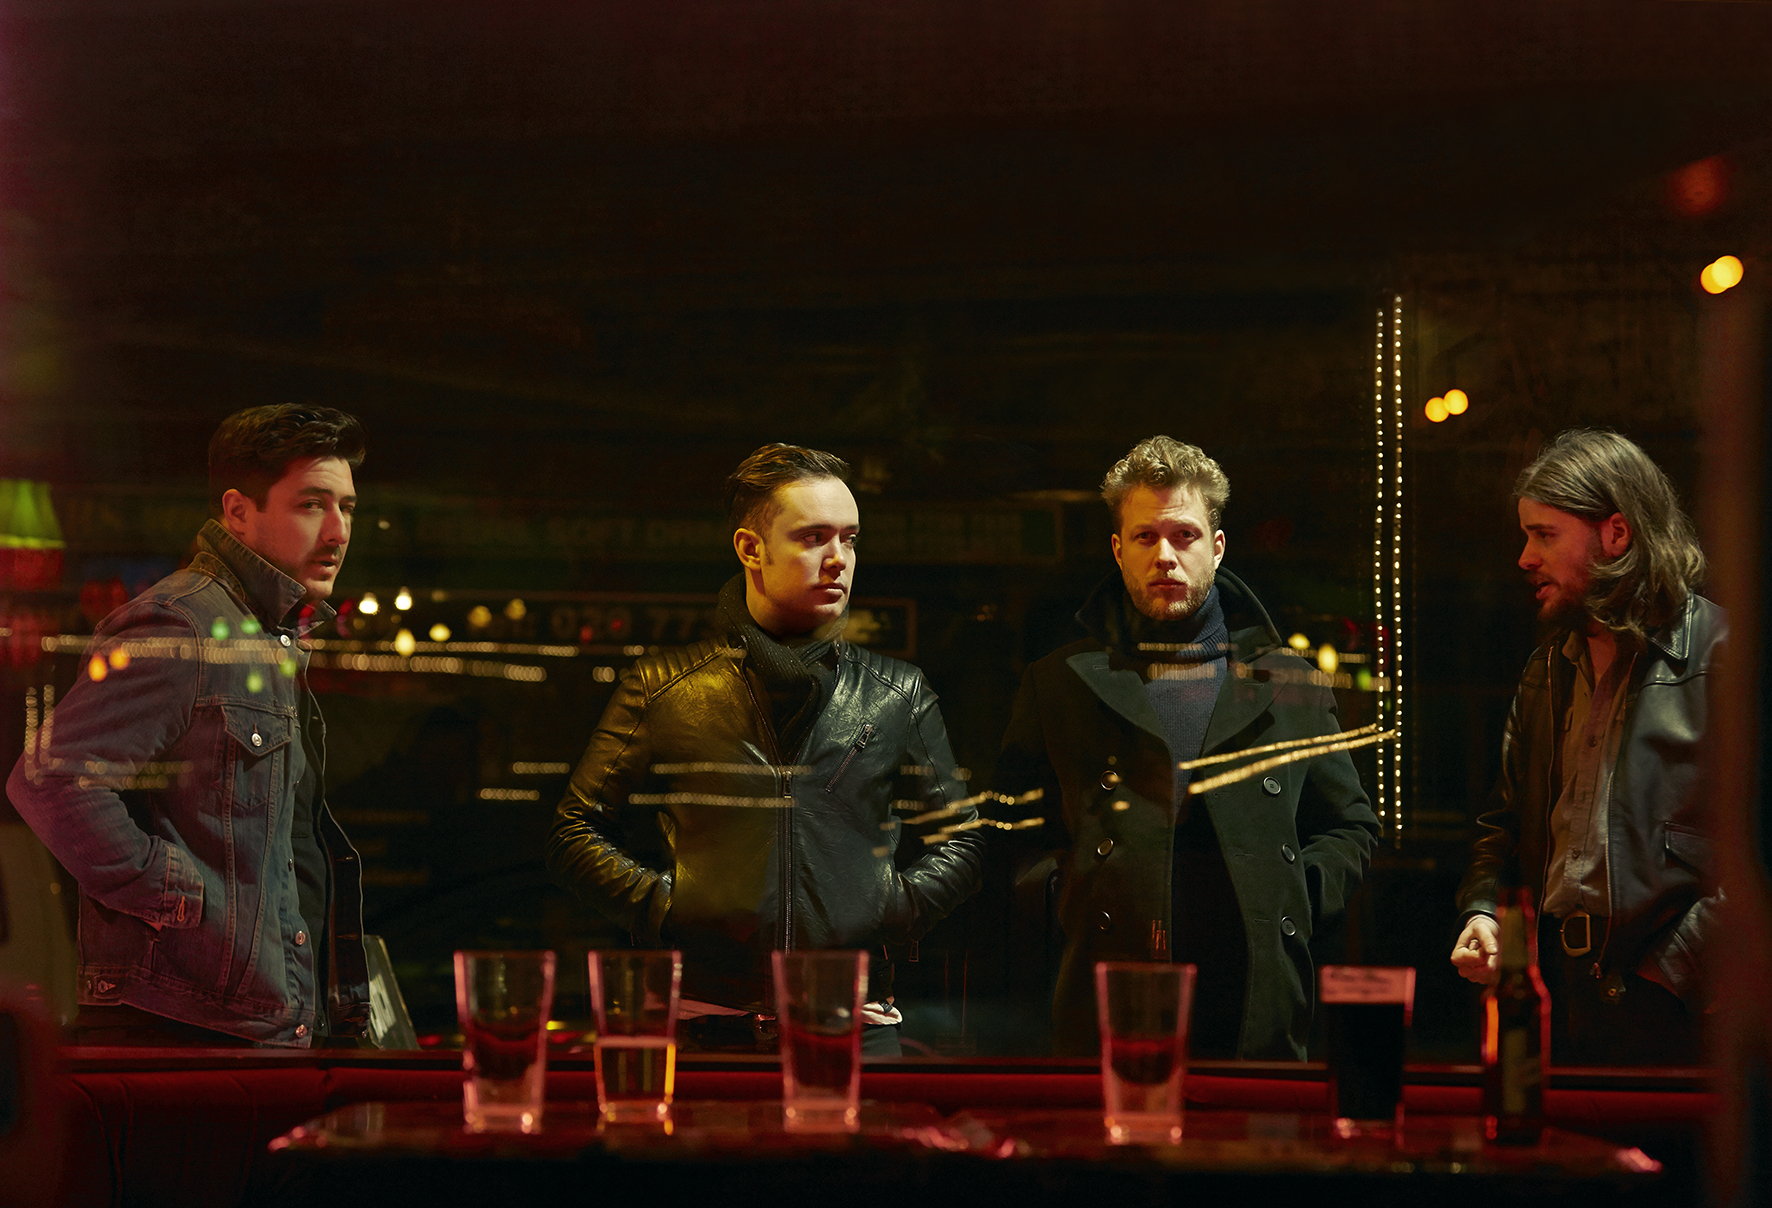 Mumford Amp Sons Announce Record Store Day New Album